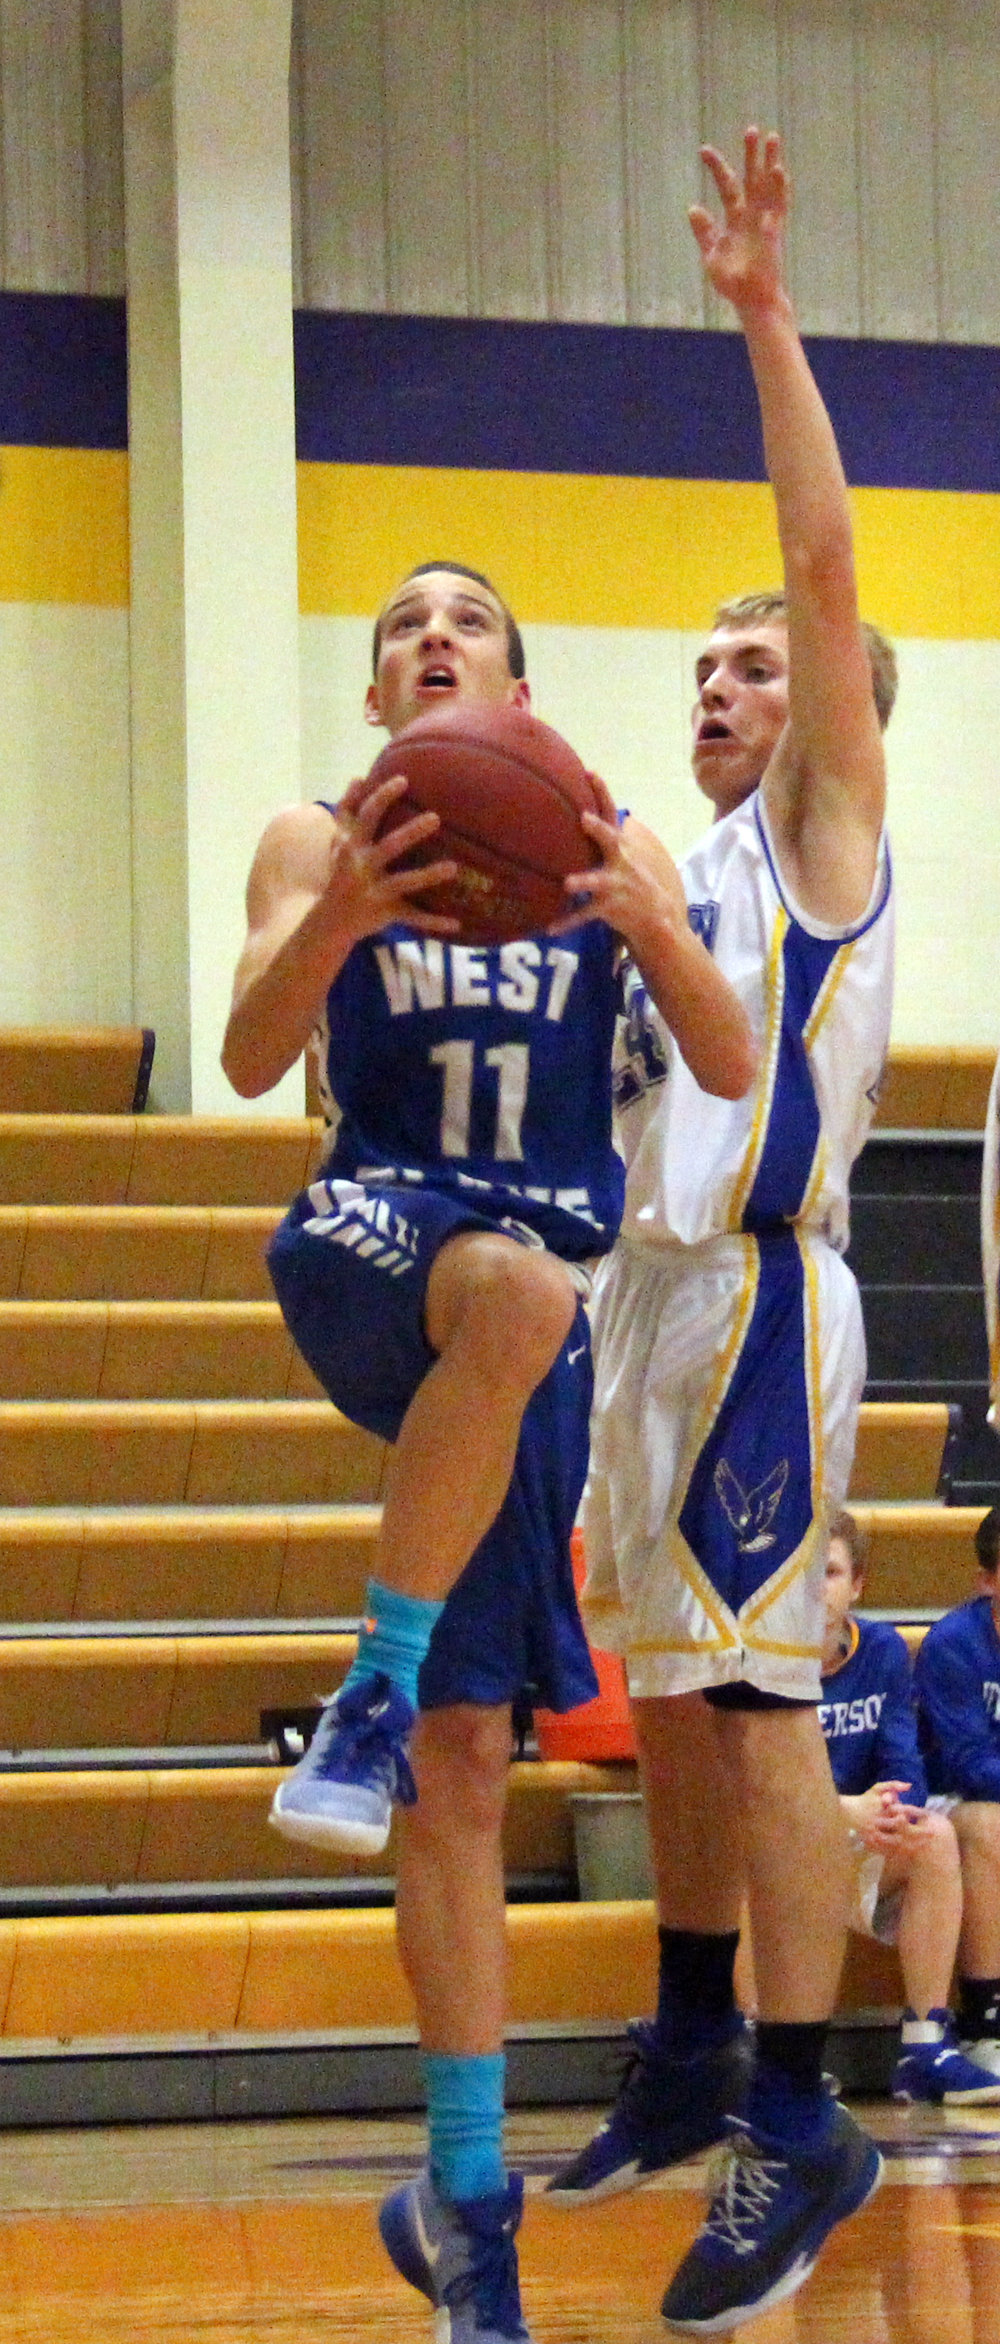 ROSS MARTIN/Citizen photo West Platte freshman Phillip Pattison (11) goes up for a layup against the Jefferson defense in a North Platte Invitational pool game Monday, Jan. 23 at North Platte High School in Dearborn, Mo.